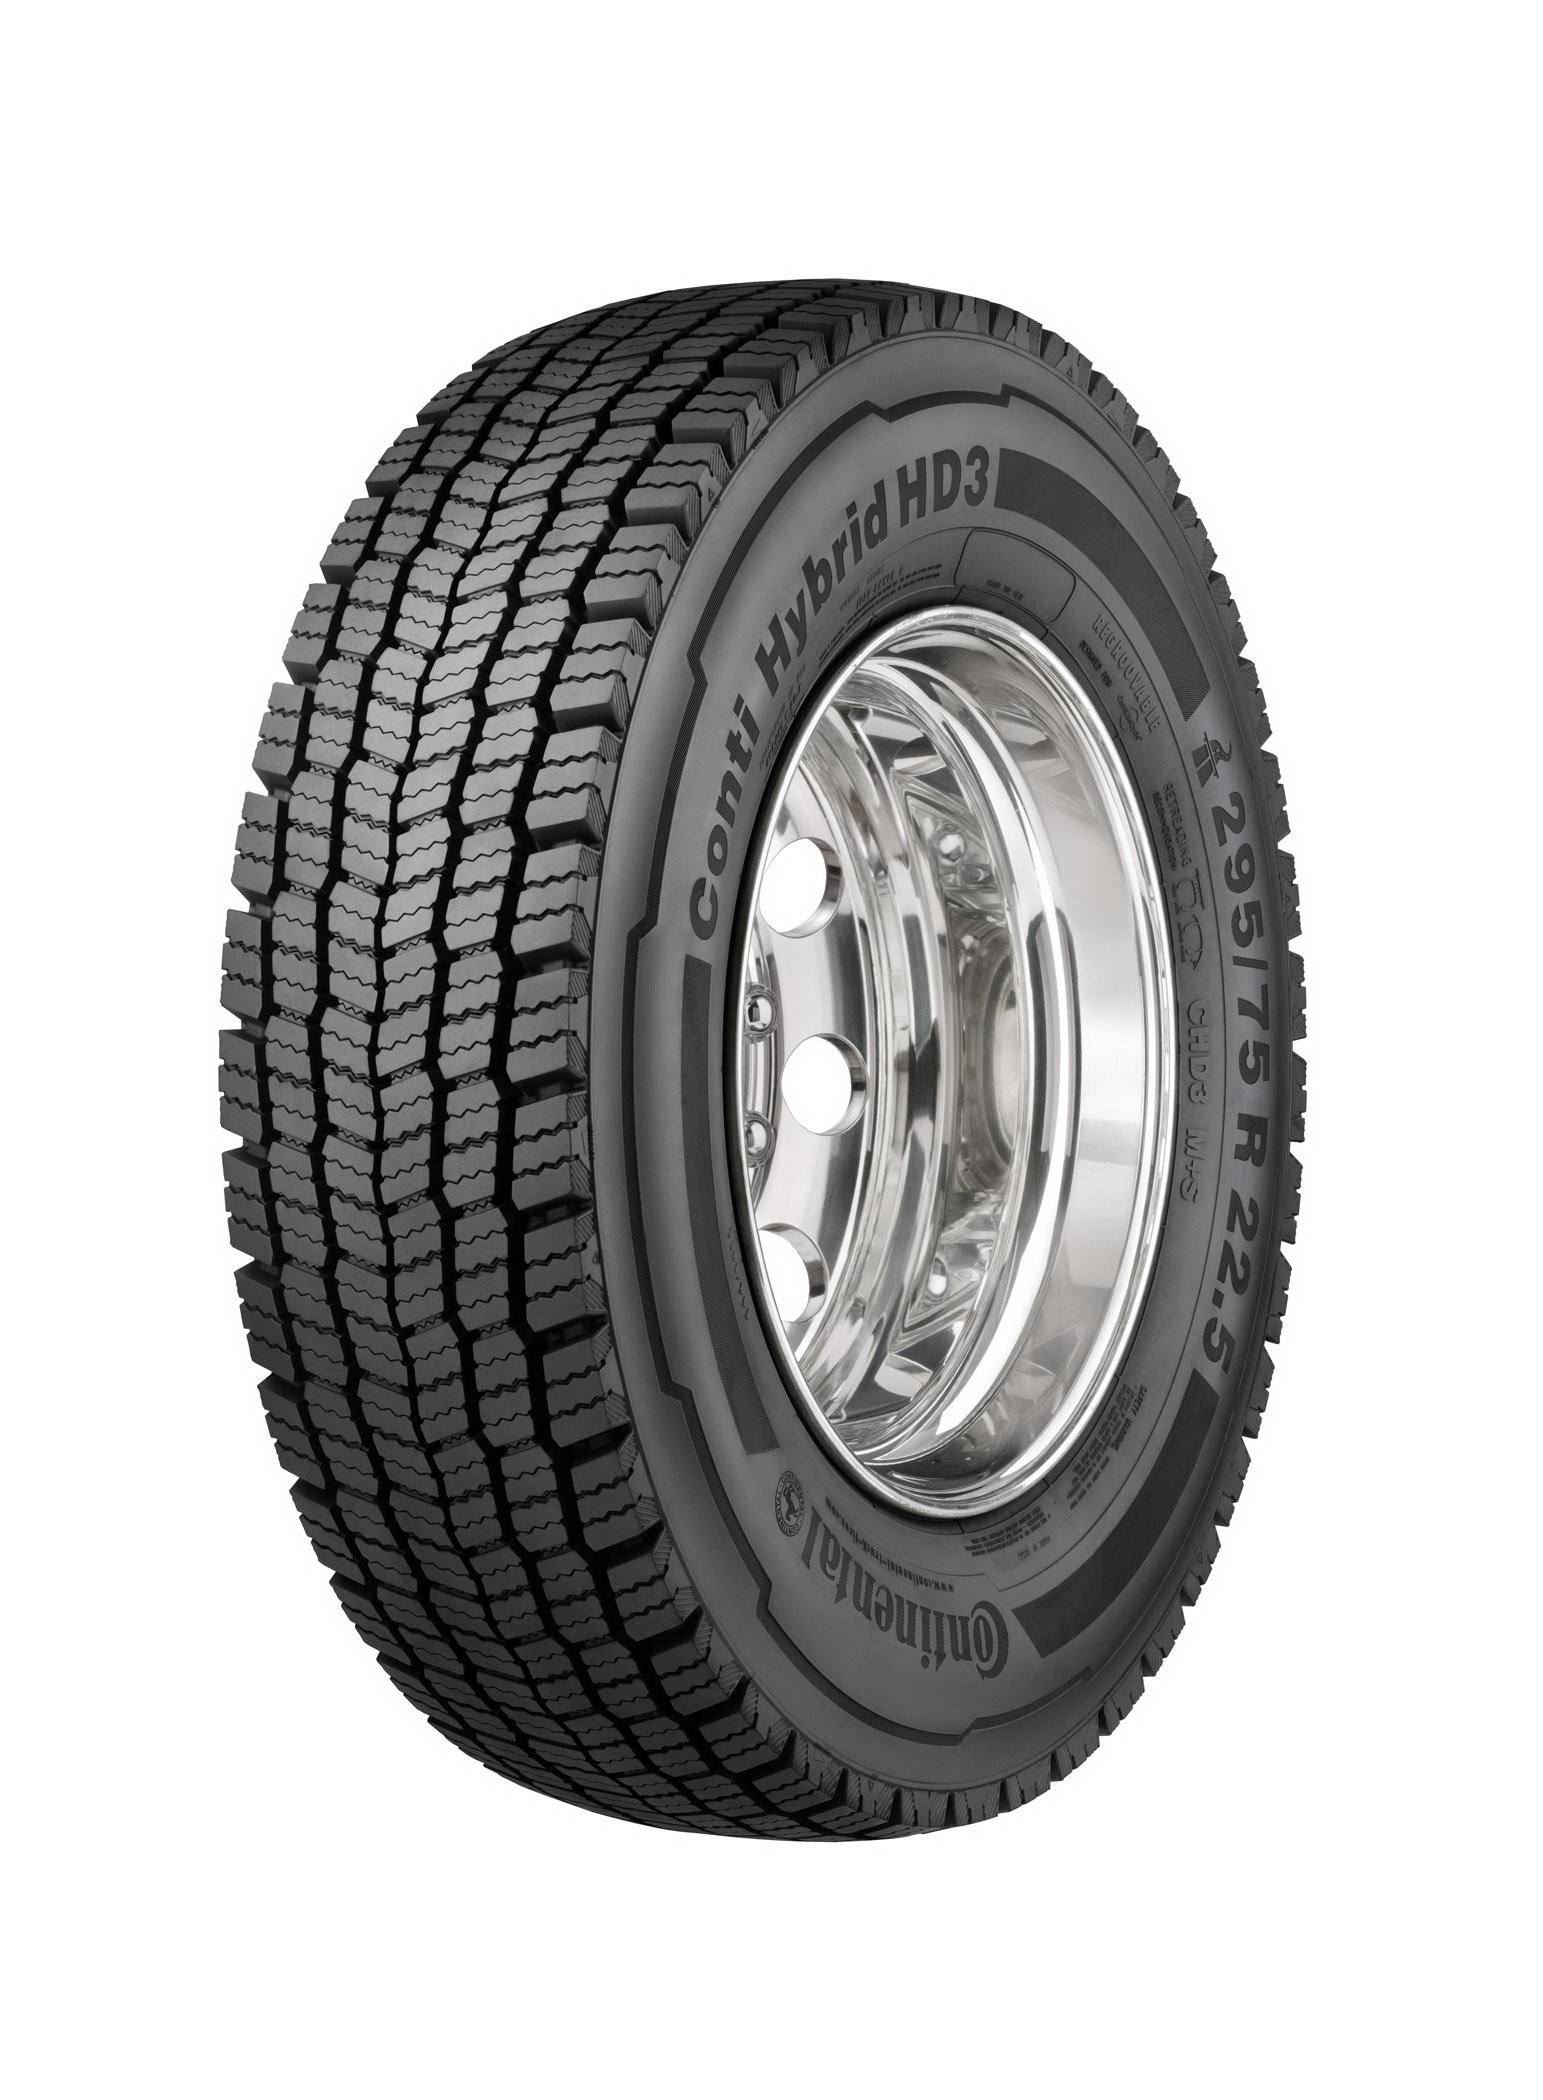 Anvelope trailer CONTINENTAL Conti Hybrid HD3 (CHD3) 295/80 R22.5 152/148M